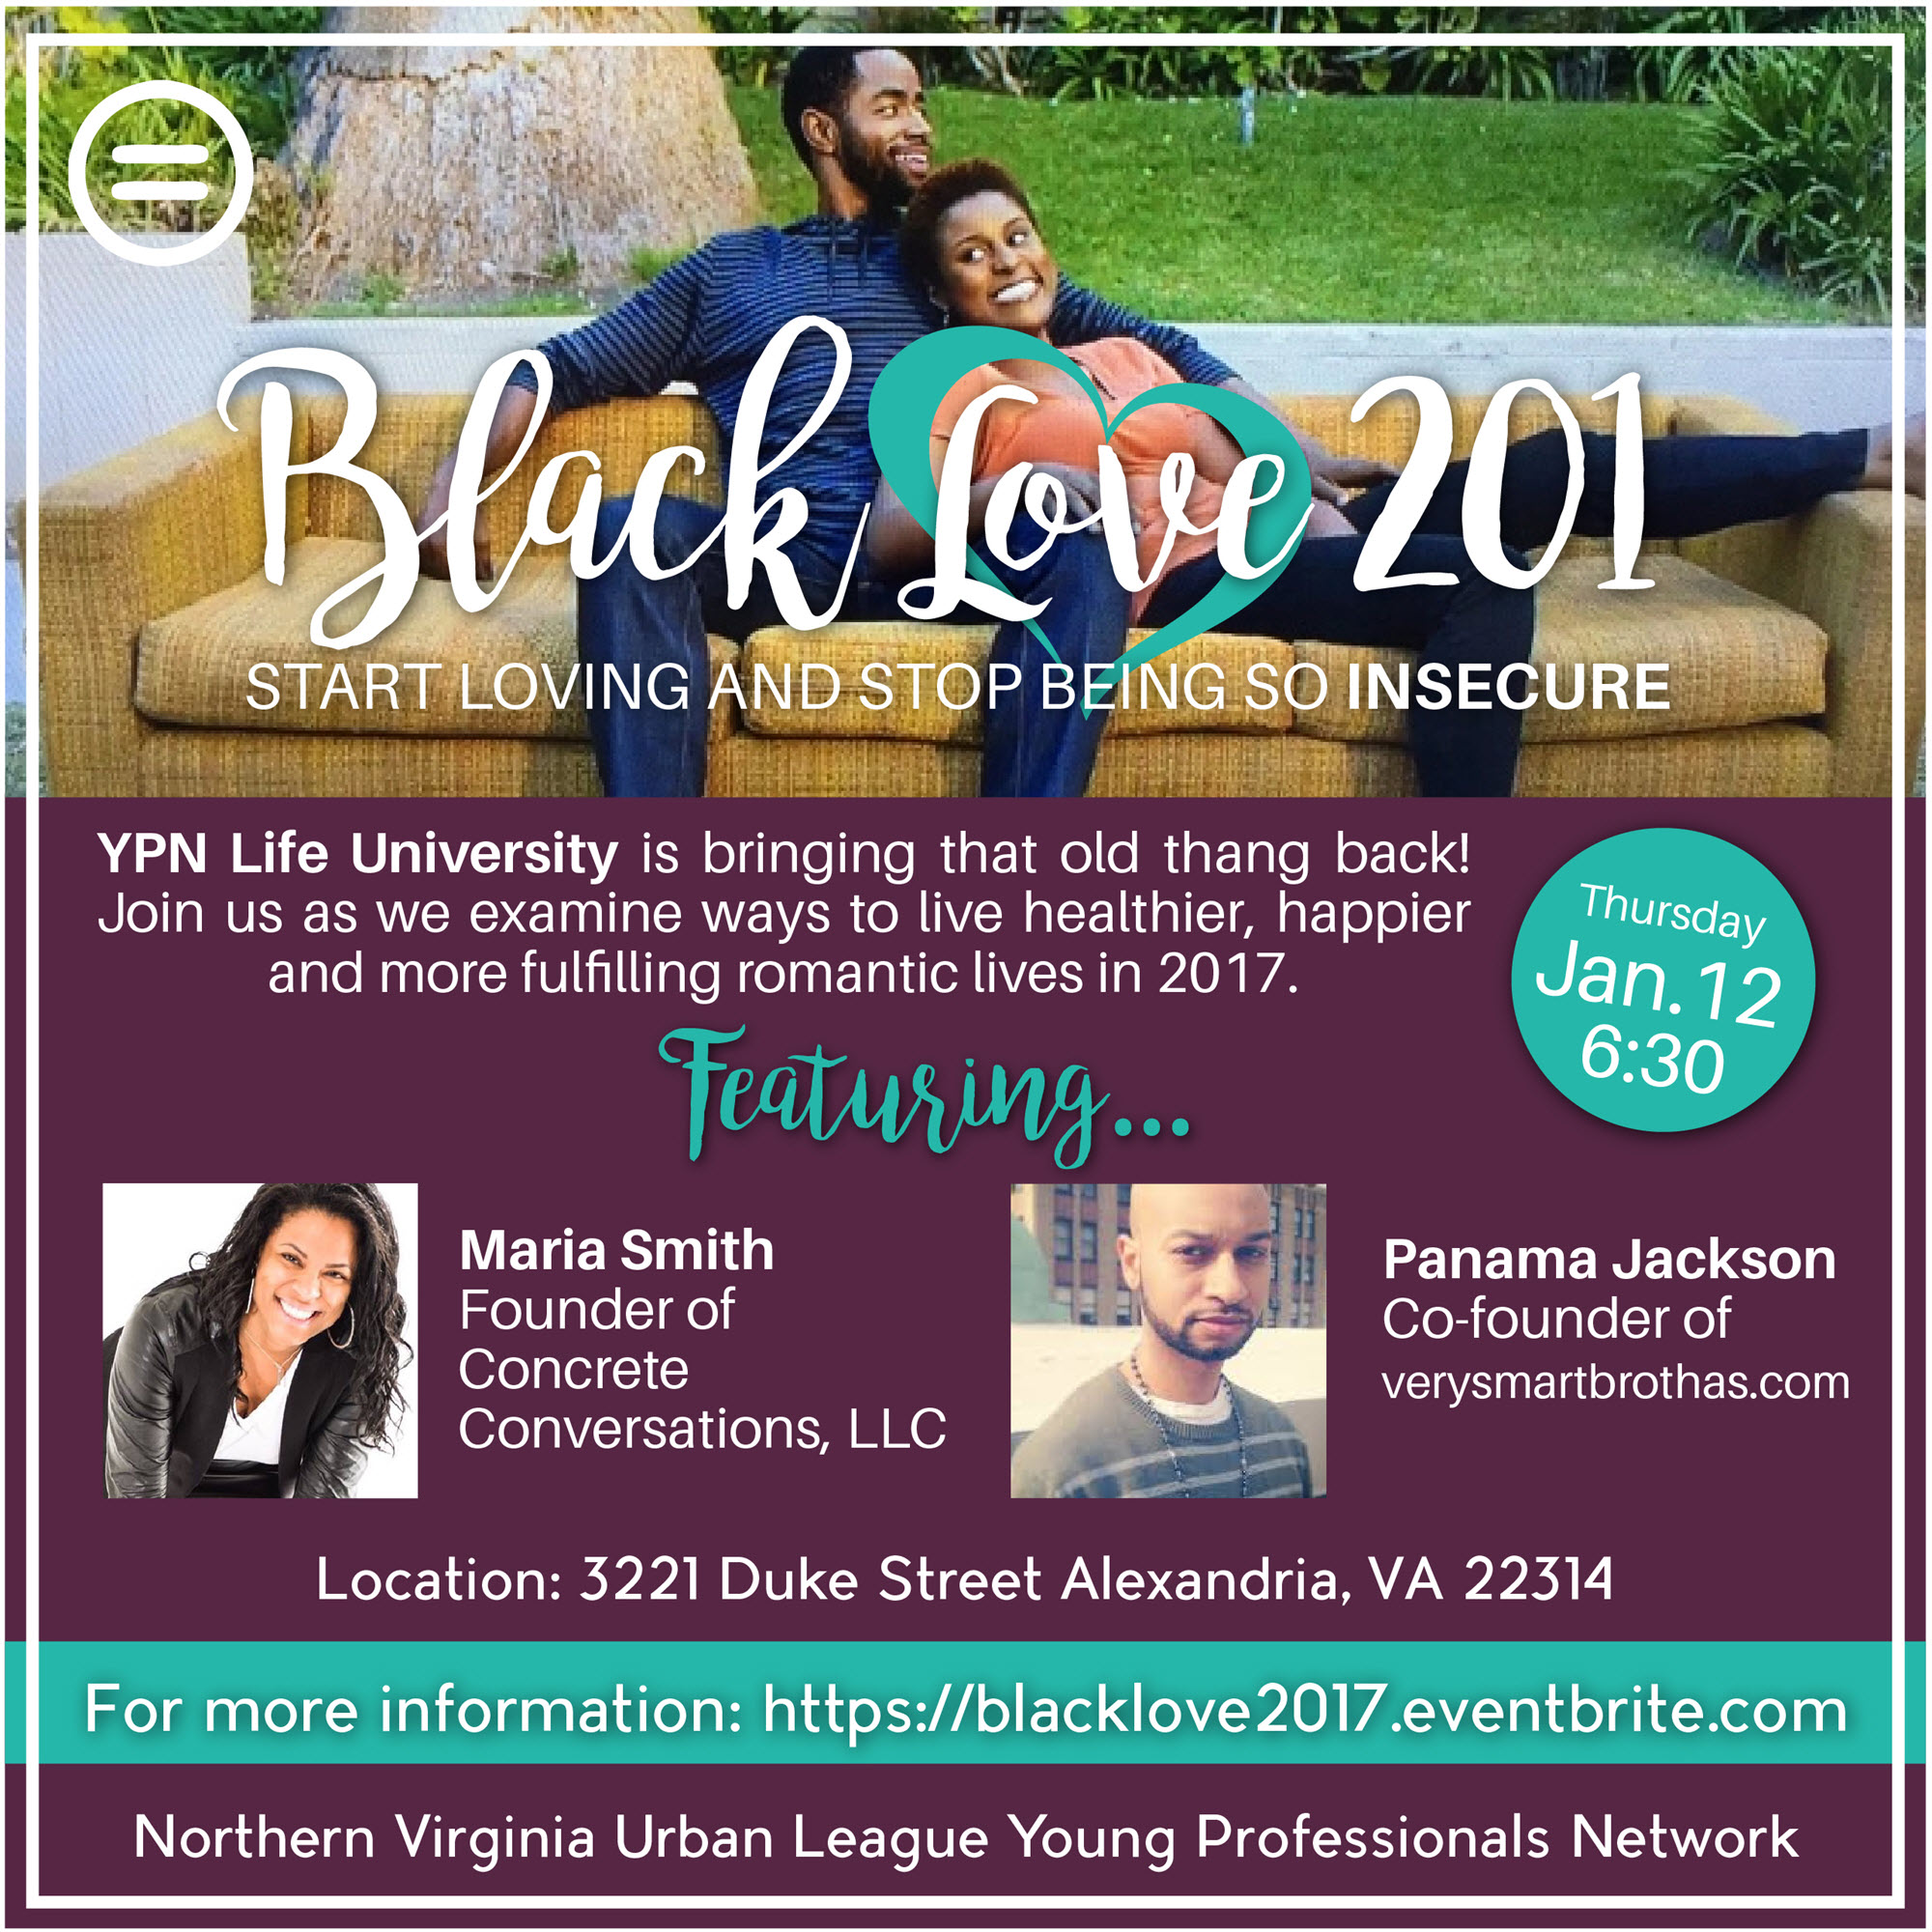 BlackLove      How to Start LOVING and Stop Being so INSECURE     Eventbrite